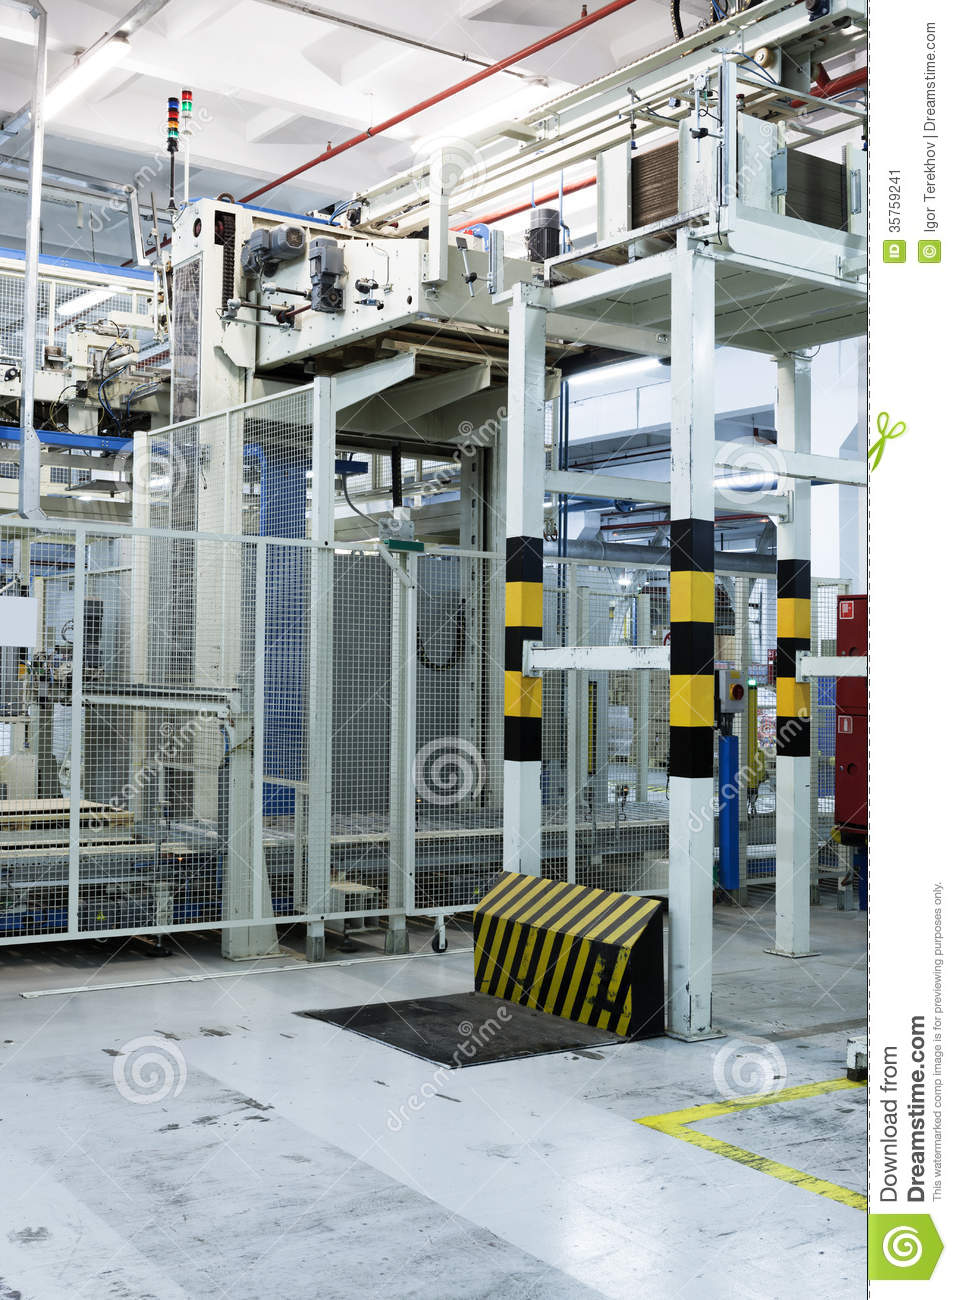 Consumer Goods Processing Plants : Equipment for packing goods stock image